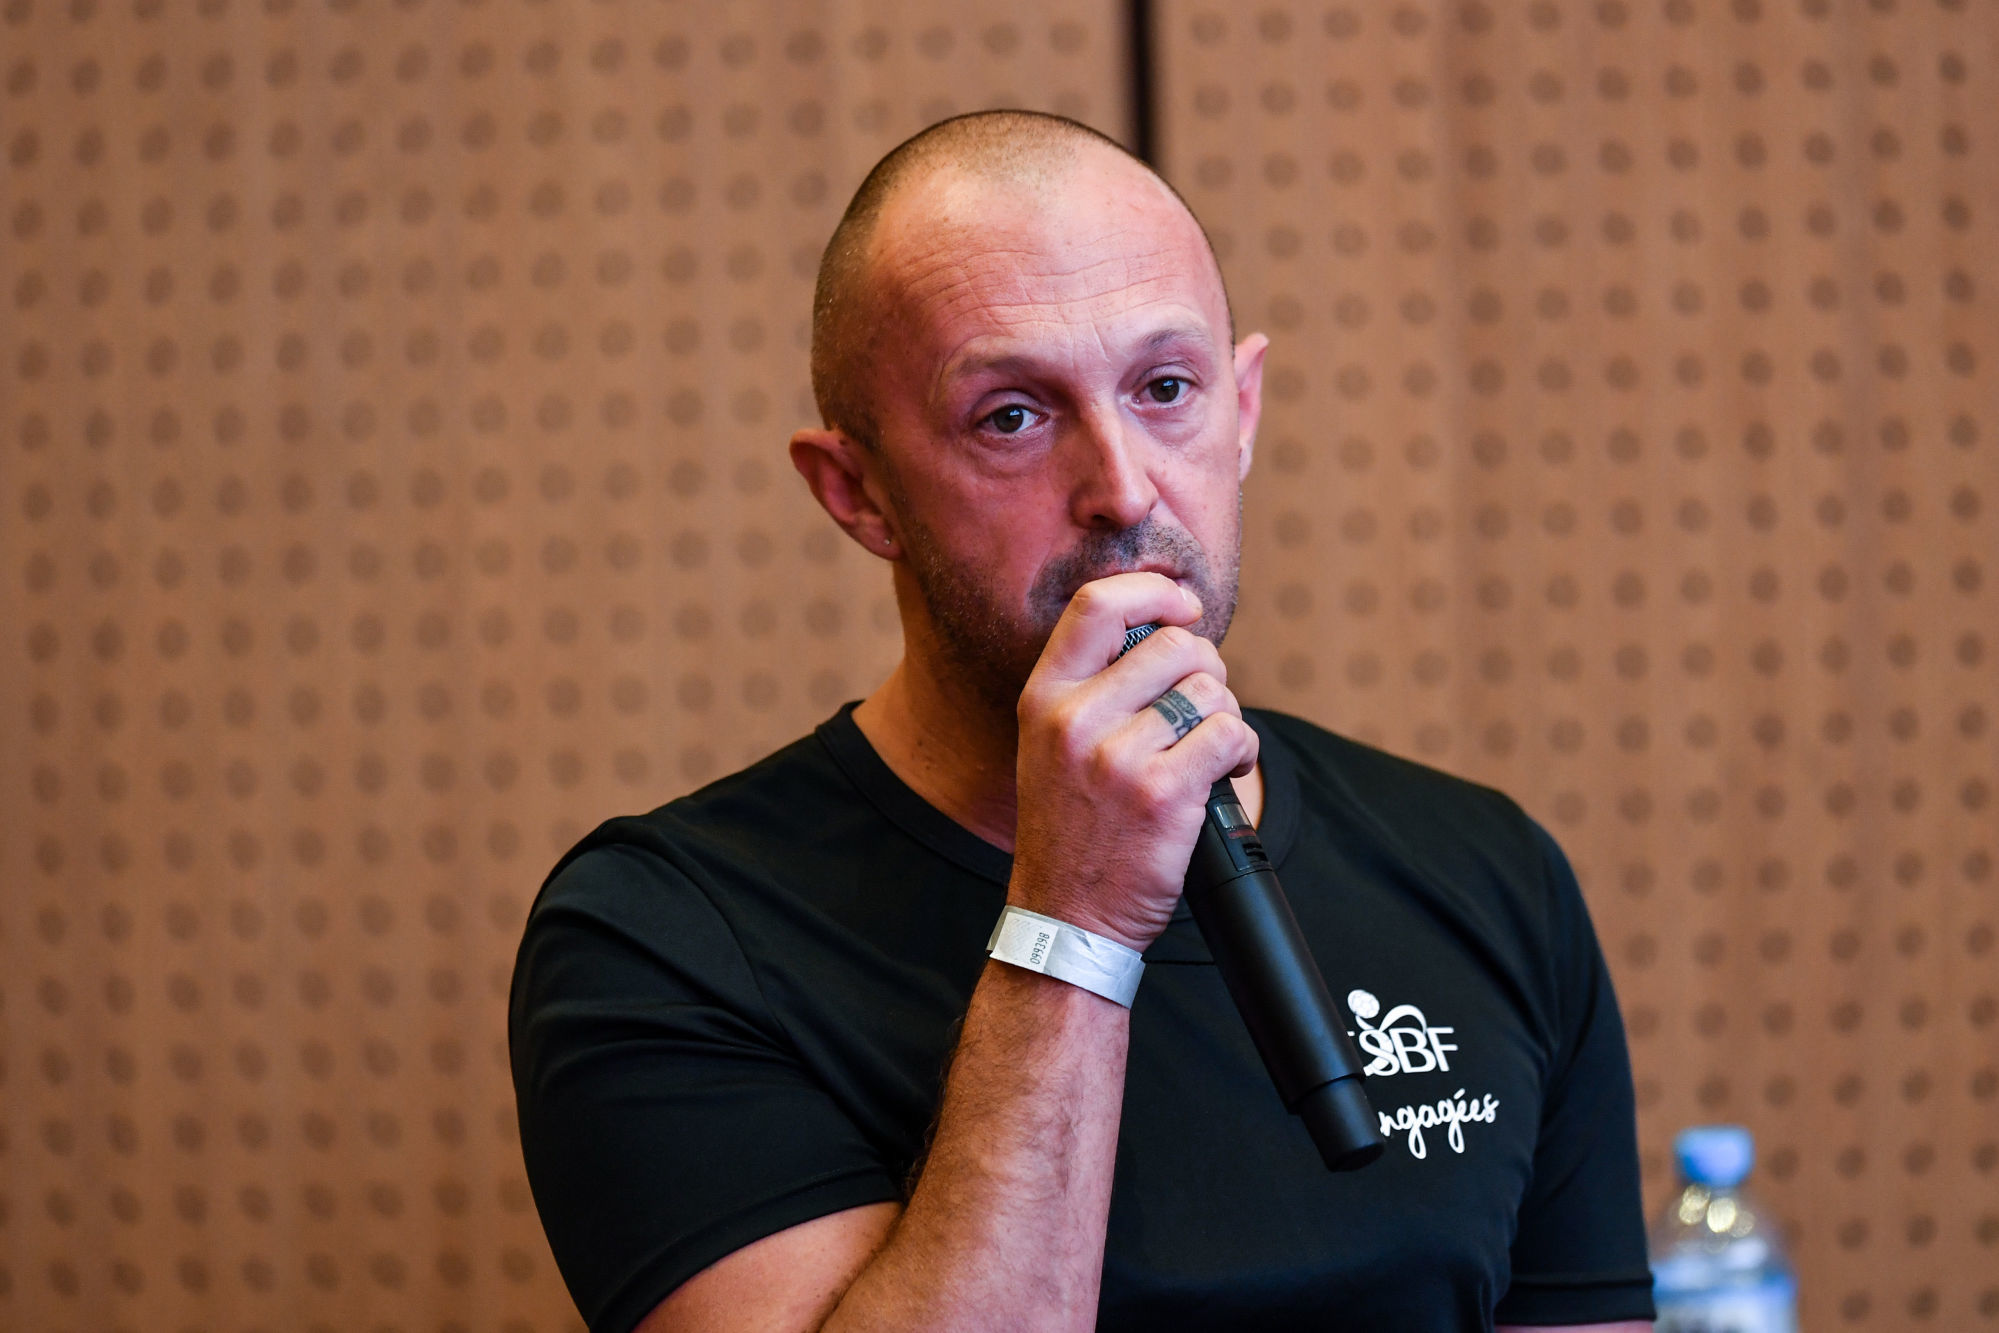 Sebastien MIZOULE head coach of ESBF Besancon during the press conference of French Women Handball National League at Maison du Handball on September 1, 2021 in Creteil, France. (Photo by Baptiste Fernandez/Icon Sport) - Sebastien MIZOULE - Maison du Handball - Creteil (France)